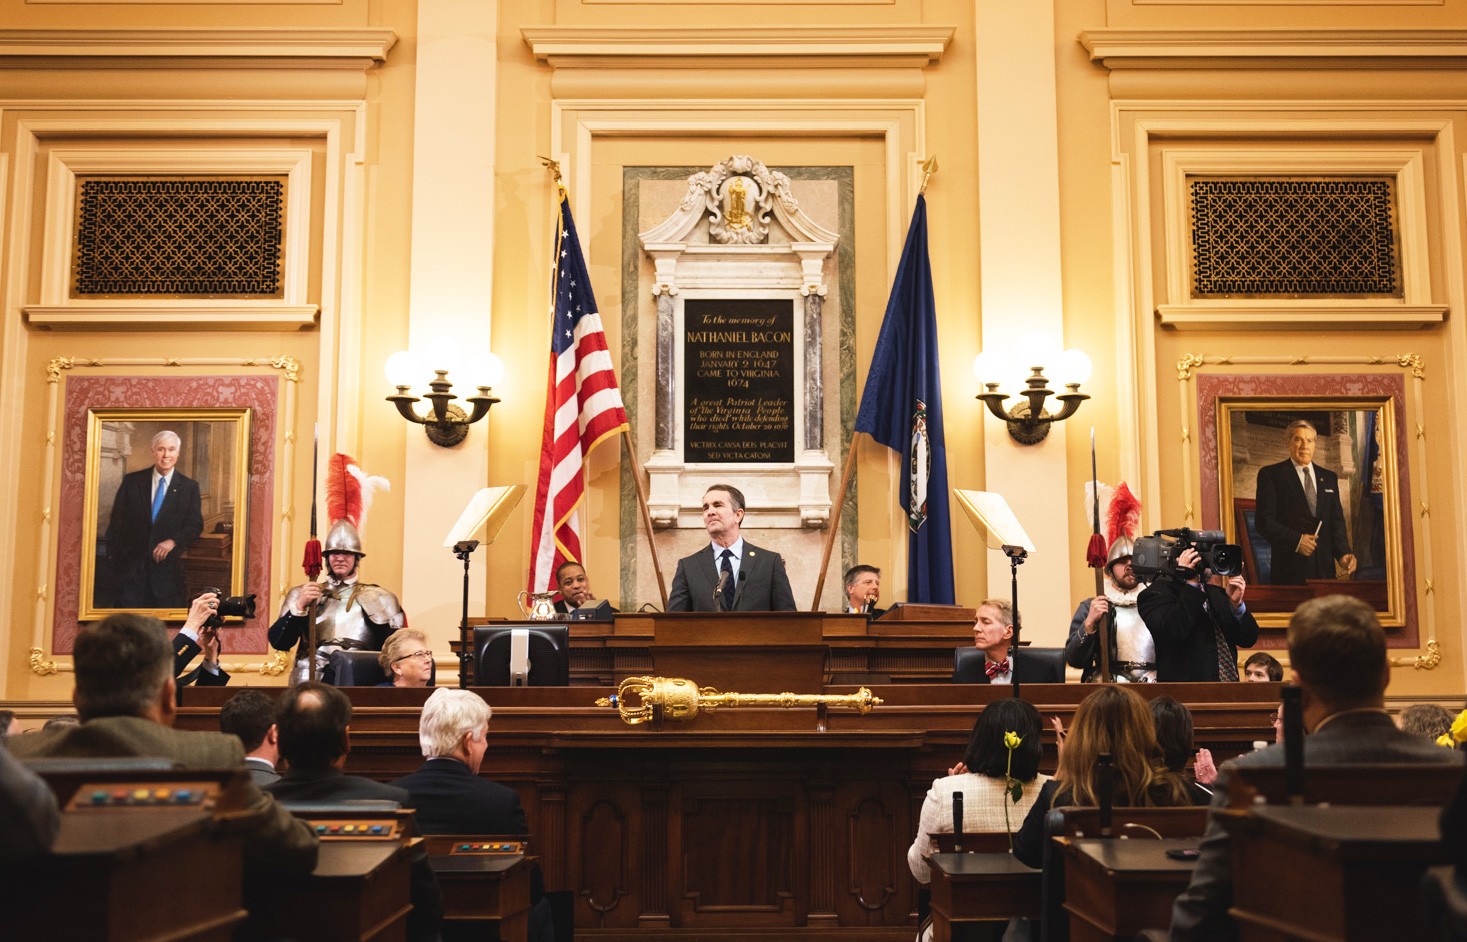 Tim Giago: The governor of Virginia is in a heap of trouble over racist photo